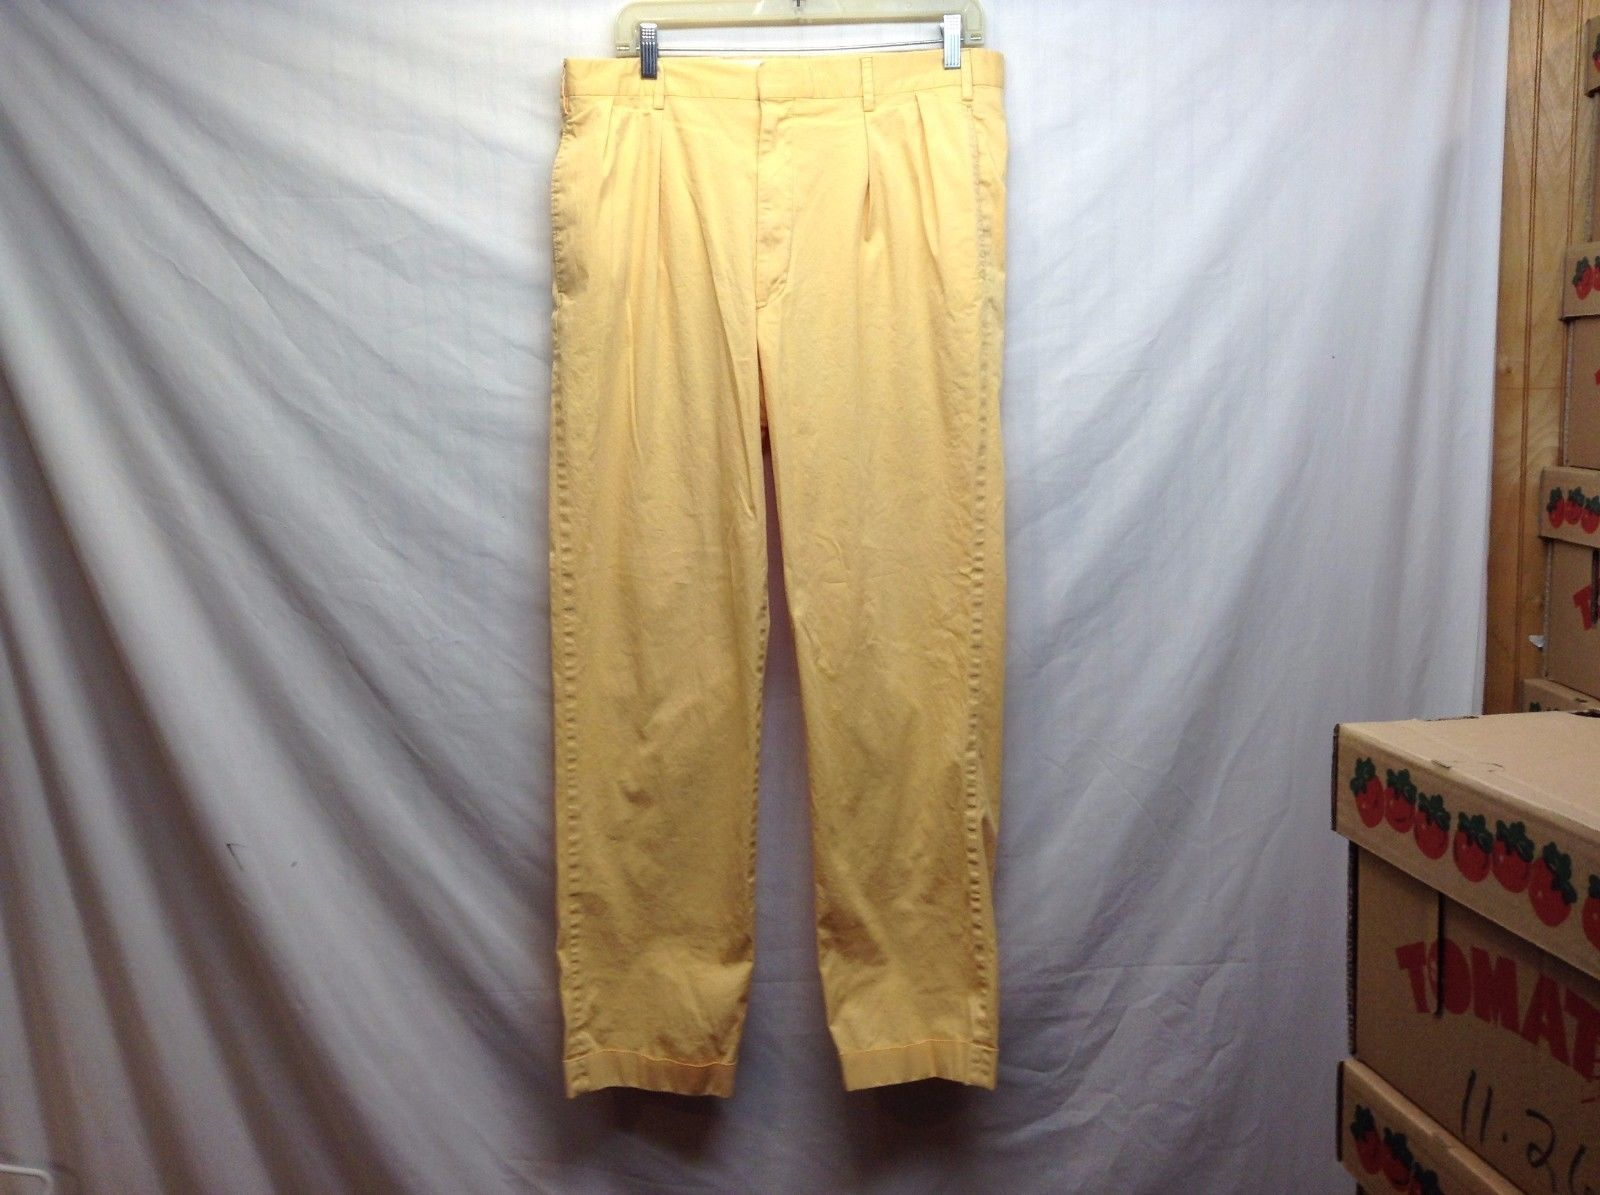 Ben Silver Charleston Mustard Yellow Cuffed Pants